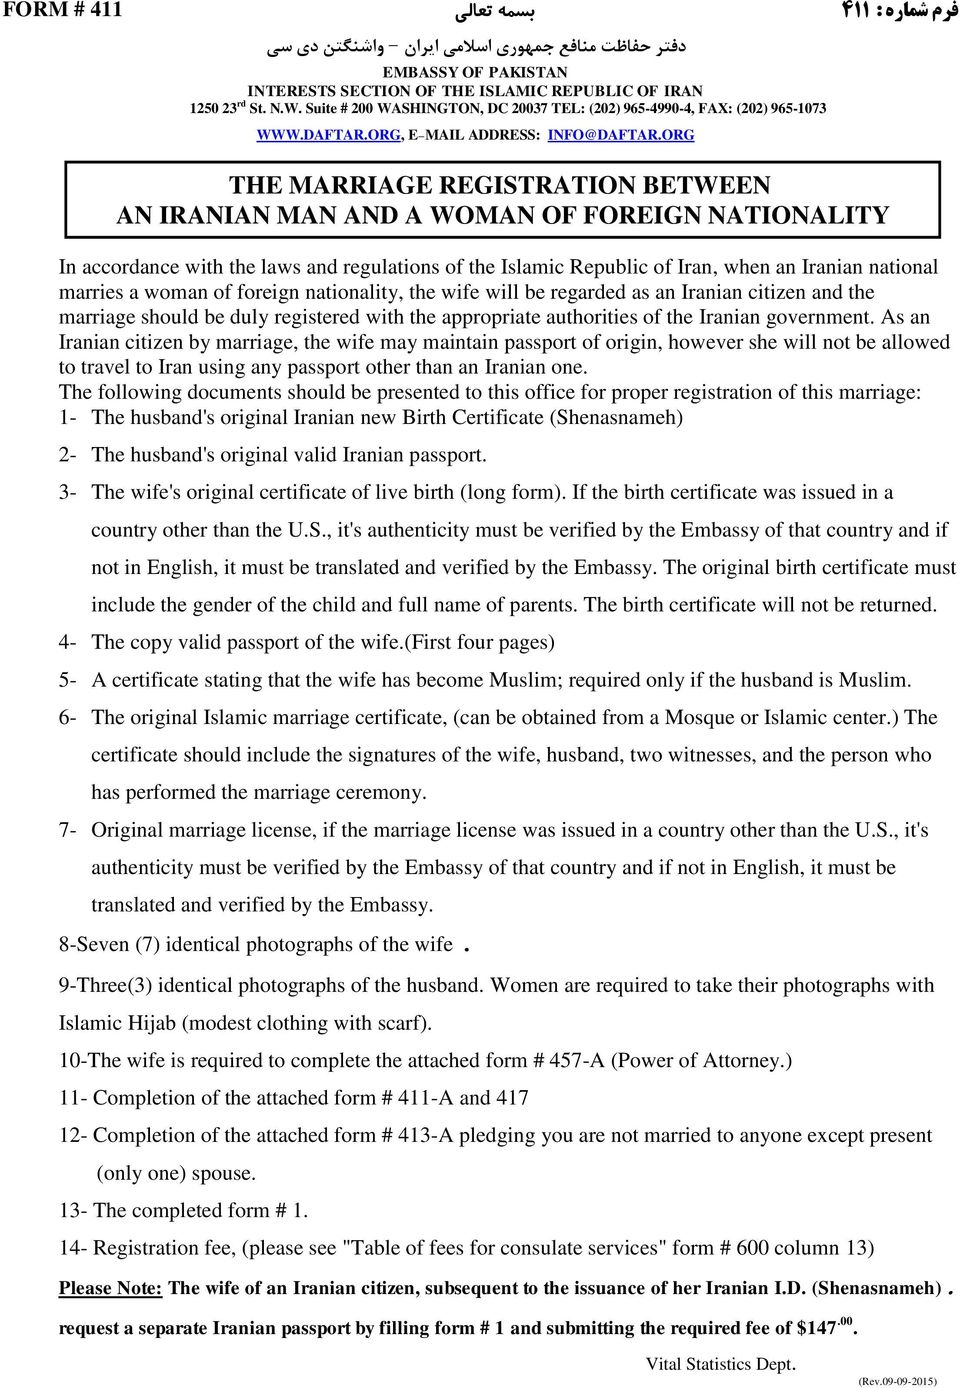 The Marriage Registration Between An Iranian Man And A Woman Of